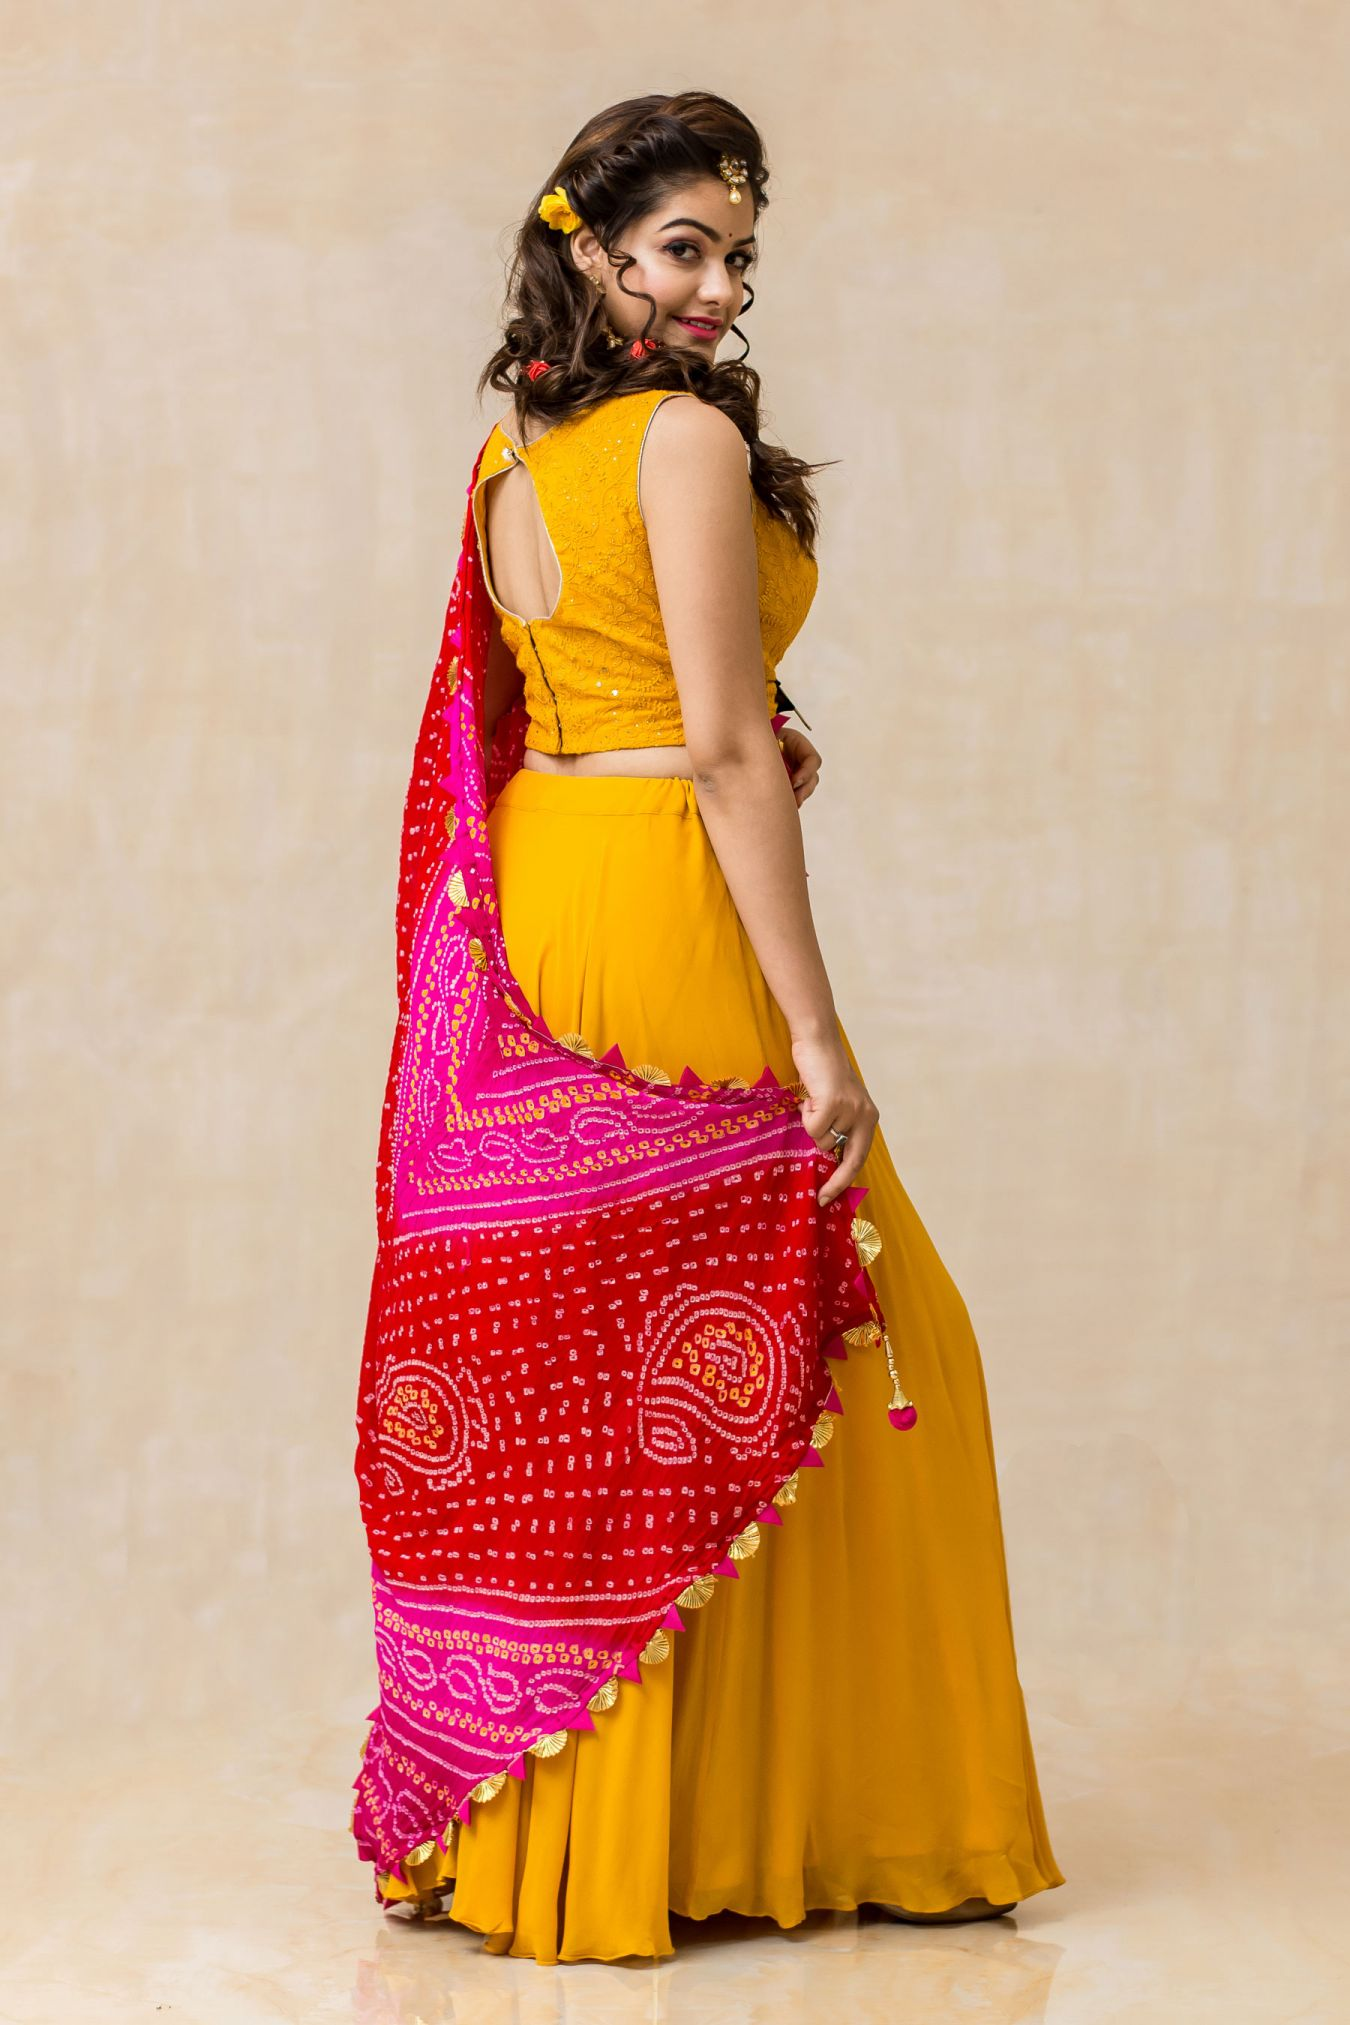 Ablaze Handcrafted Chikan Mukaish Georgette Skirt Top Set in Magnificent Mustard Yellow Hue